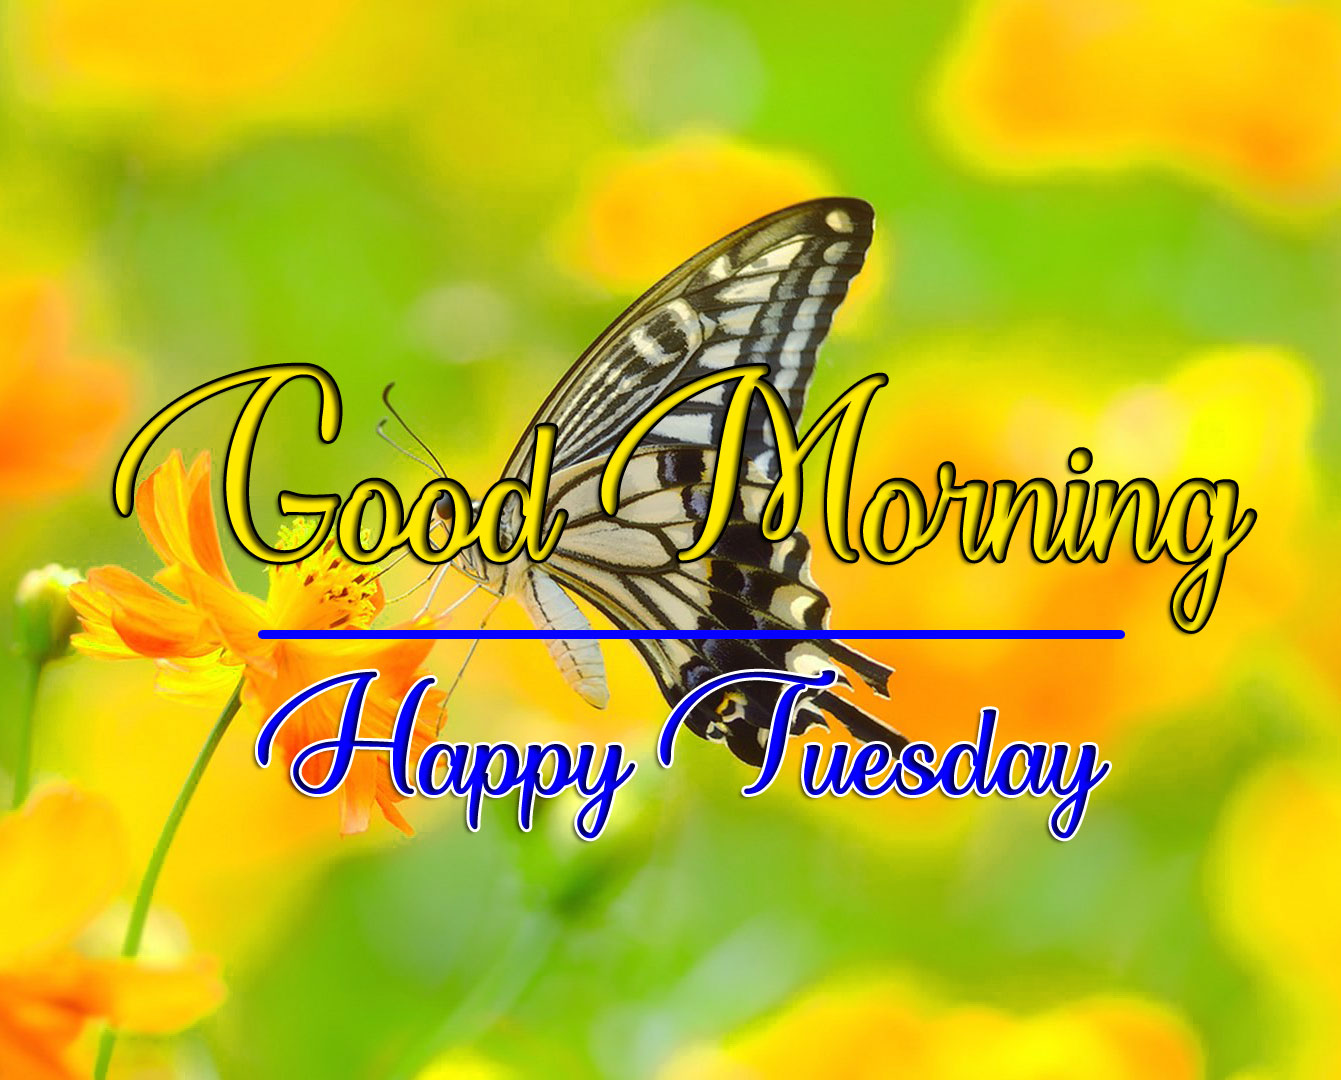 New HD Butterfly Tuesday Good morning Images